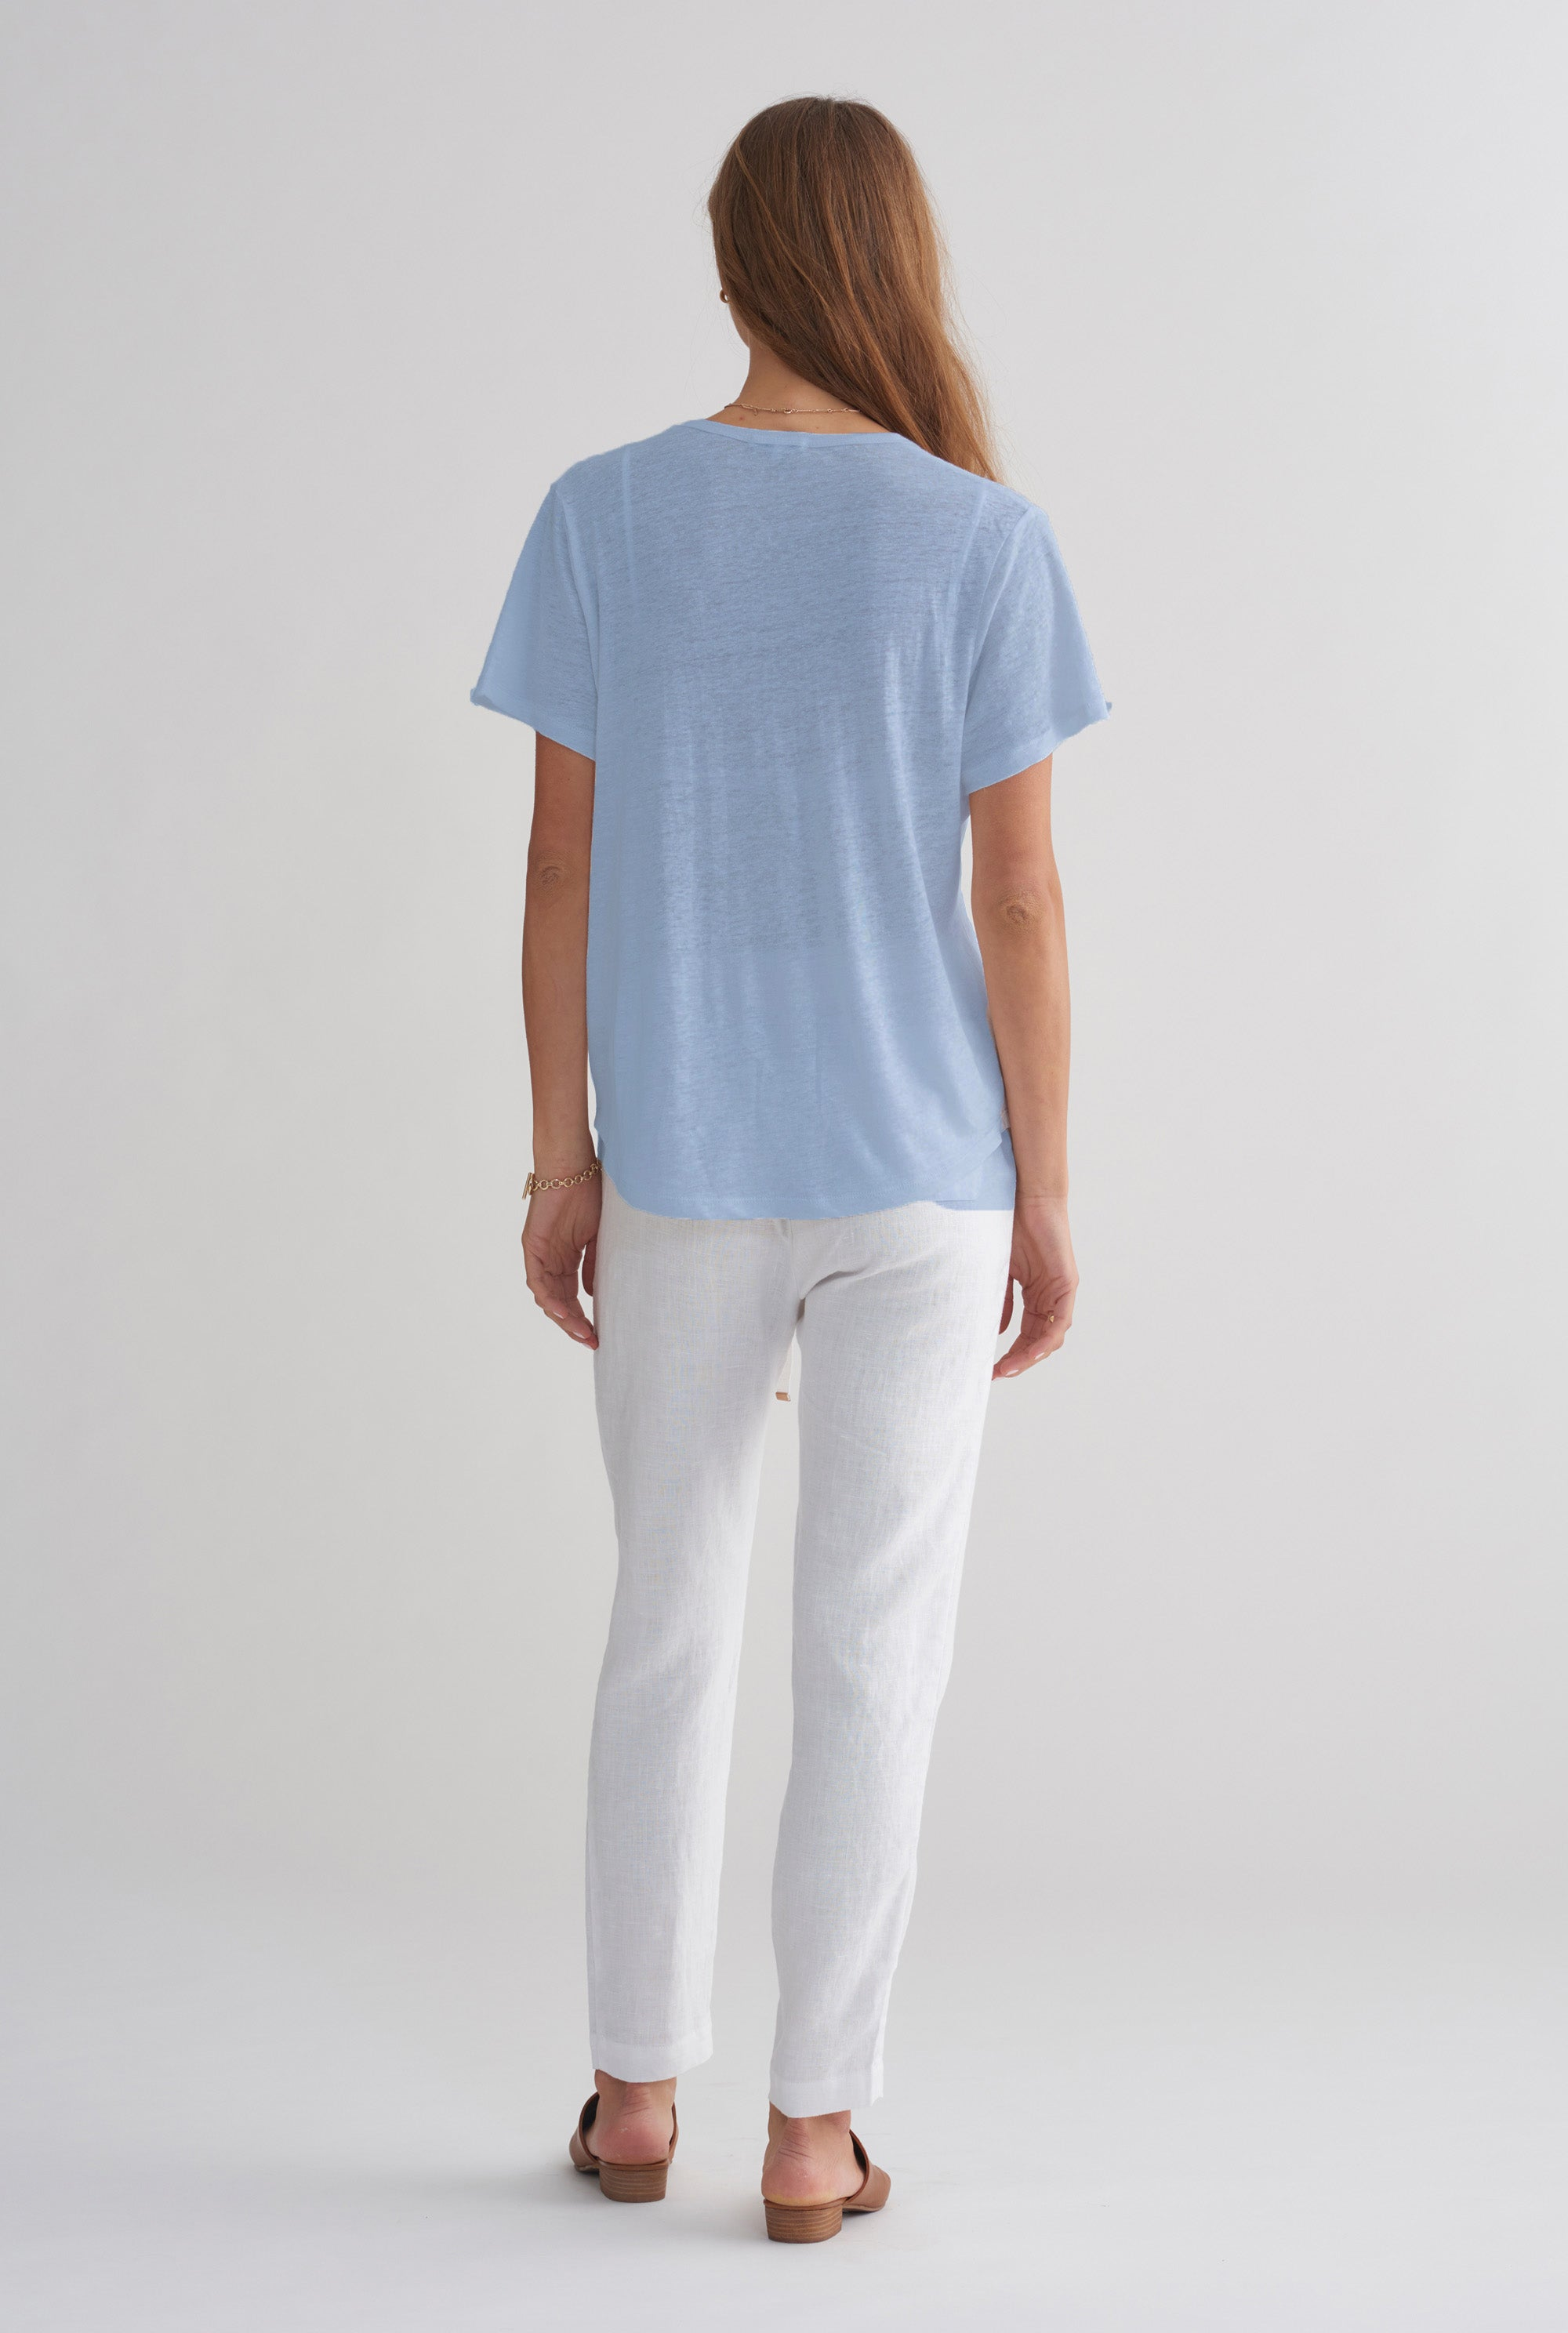 Scoopneck T-Shirt - Cornflower Blue